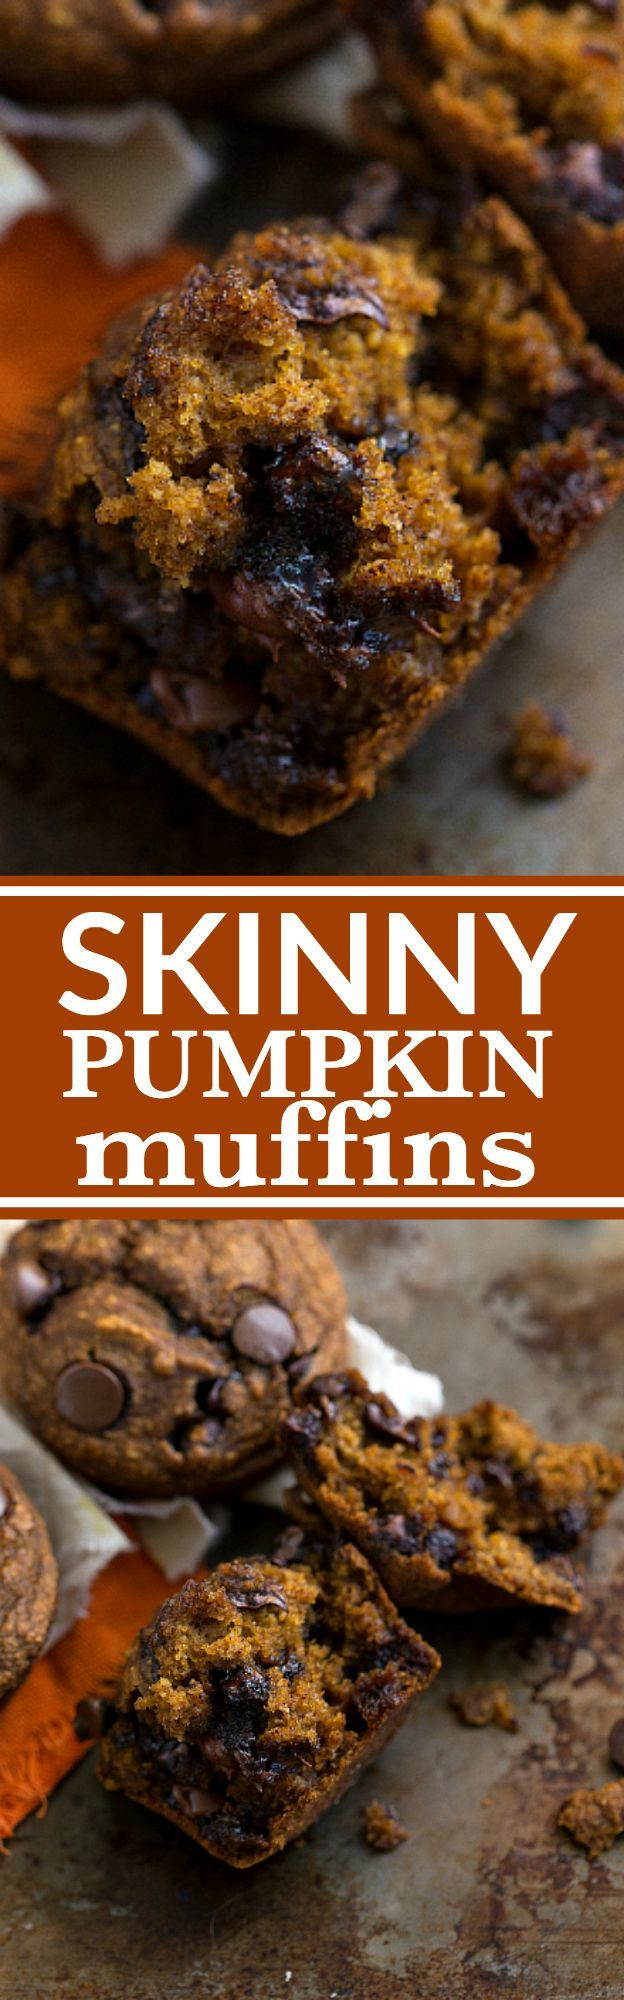 A low-calorie and healthier pumpkin chocolate-chip muffin with absolutely no butter, oil, or flour plus very little sugar. These gluten-free muffins are stuffed to the brim with flavor, they are healthy, and you will be shocked how great they taste while being so healthy! I admit, these are not the prettiest looking muffins. But gosh the taste!...